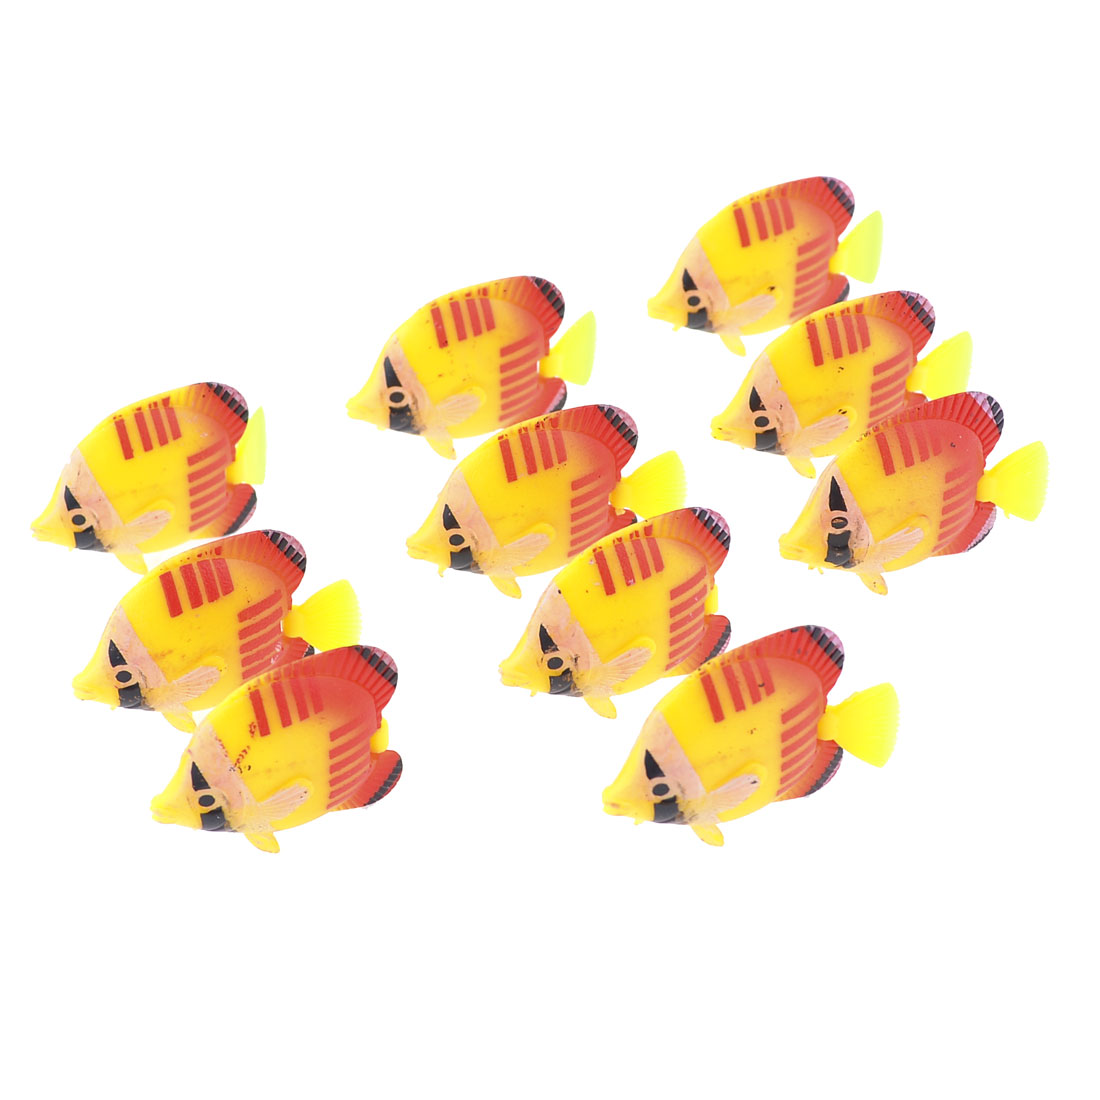 10 Pcs Yellow Red Artificial Plastic Movable Tail Fish for Tank Decor